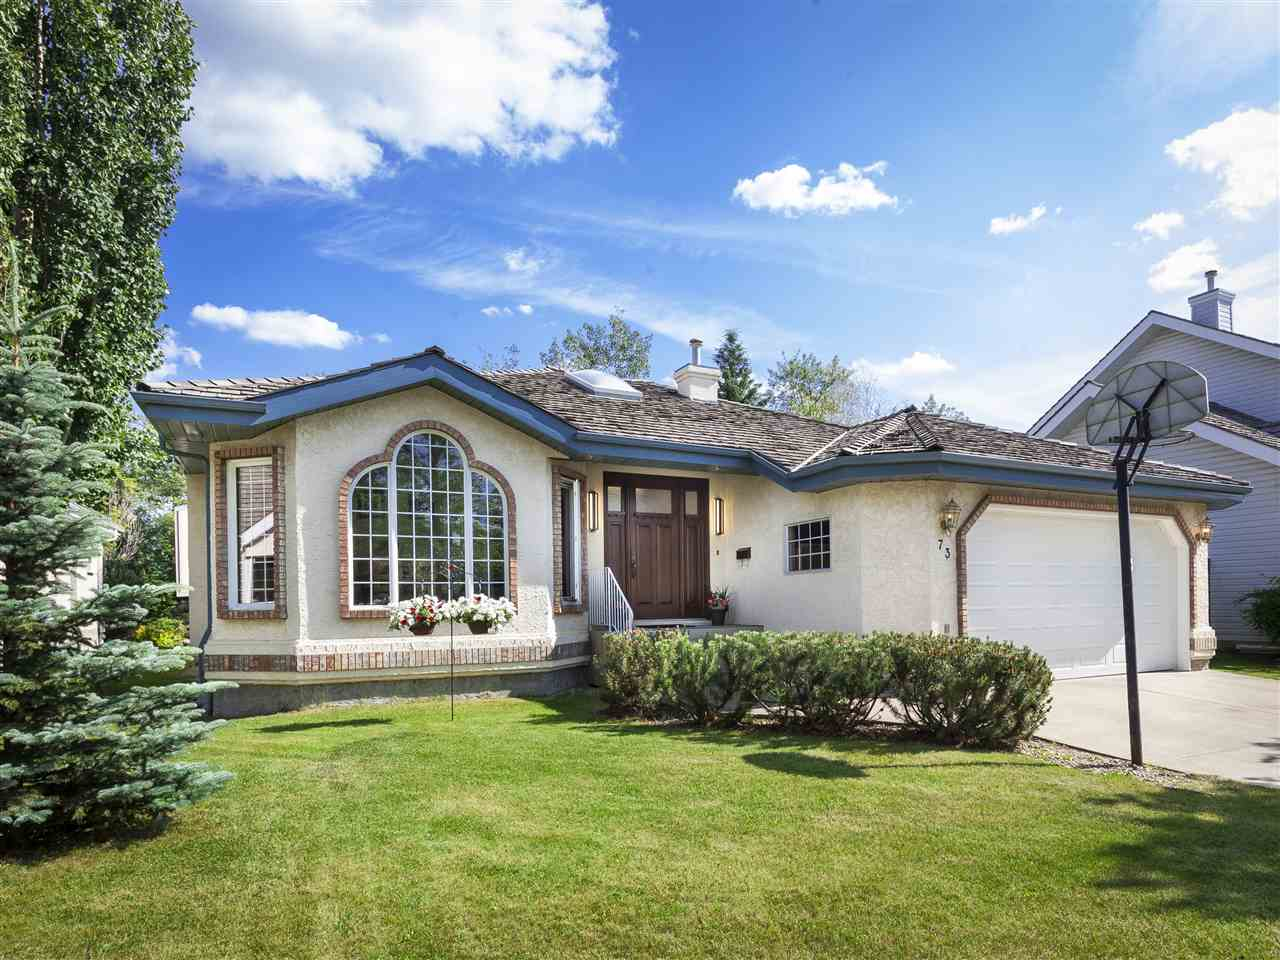 Main Photo: 73 BLACKBURN Drive W in Edmonton: Zone 55 House for sale : MLS® # E4071704